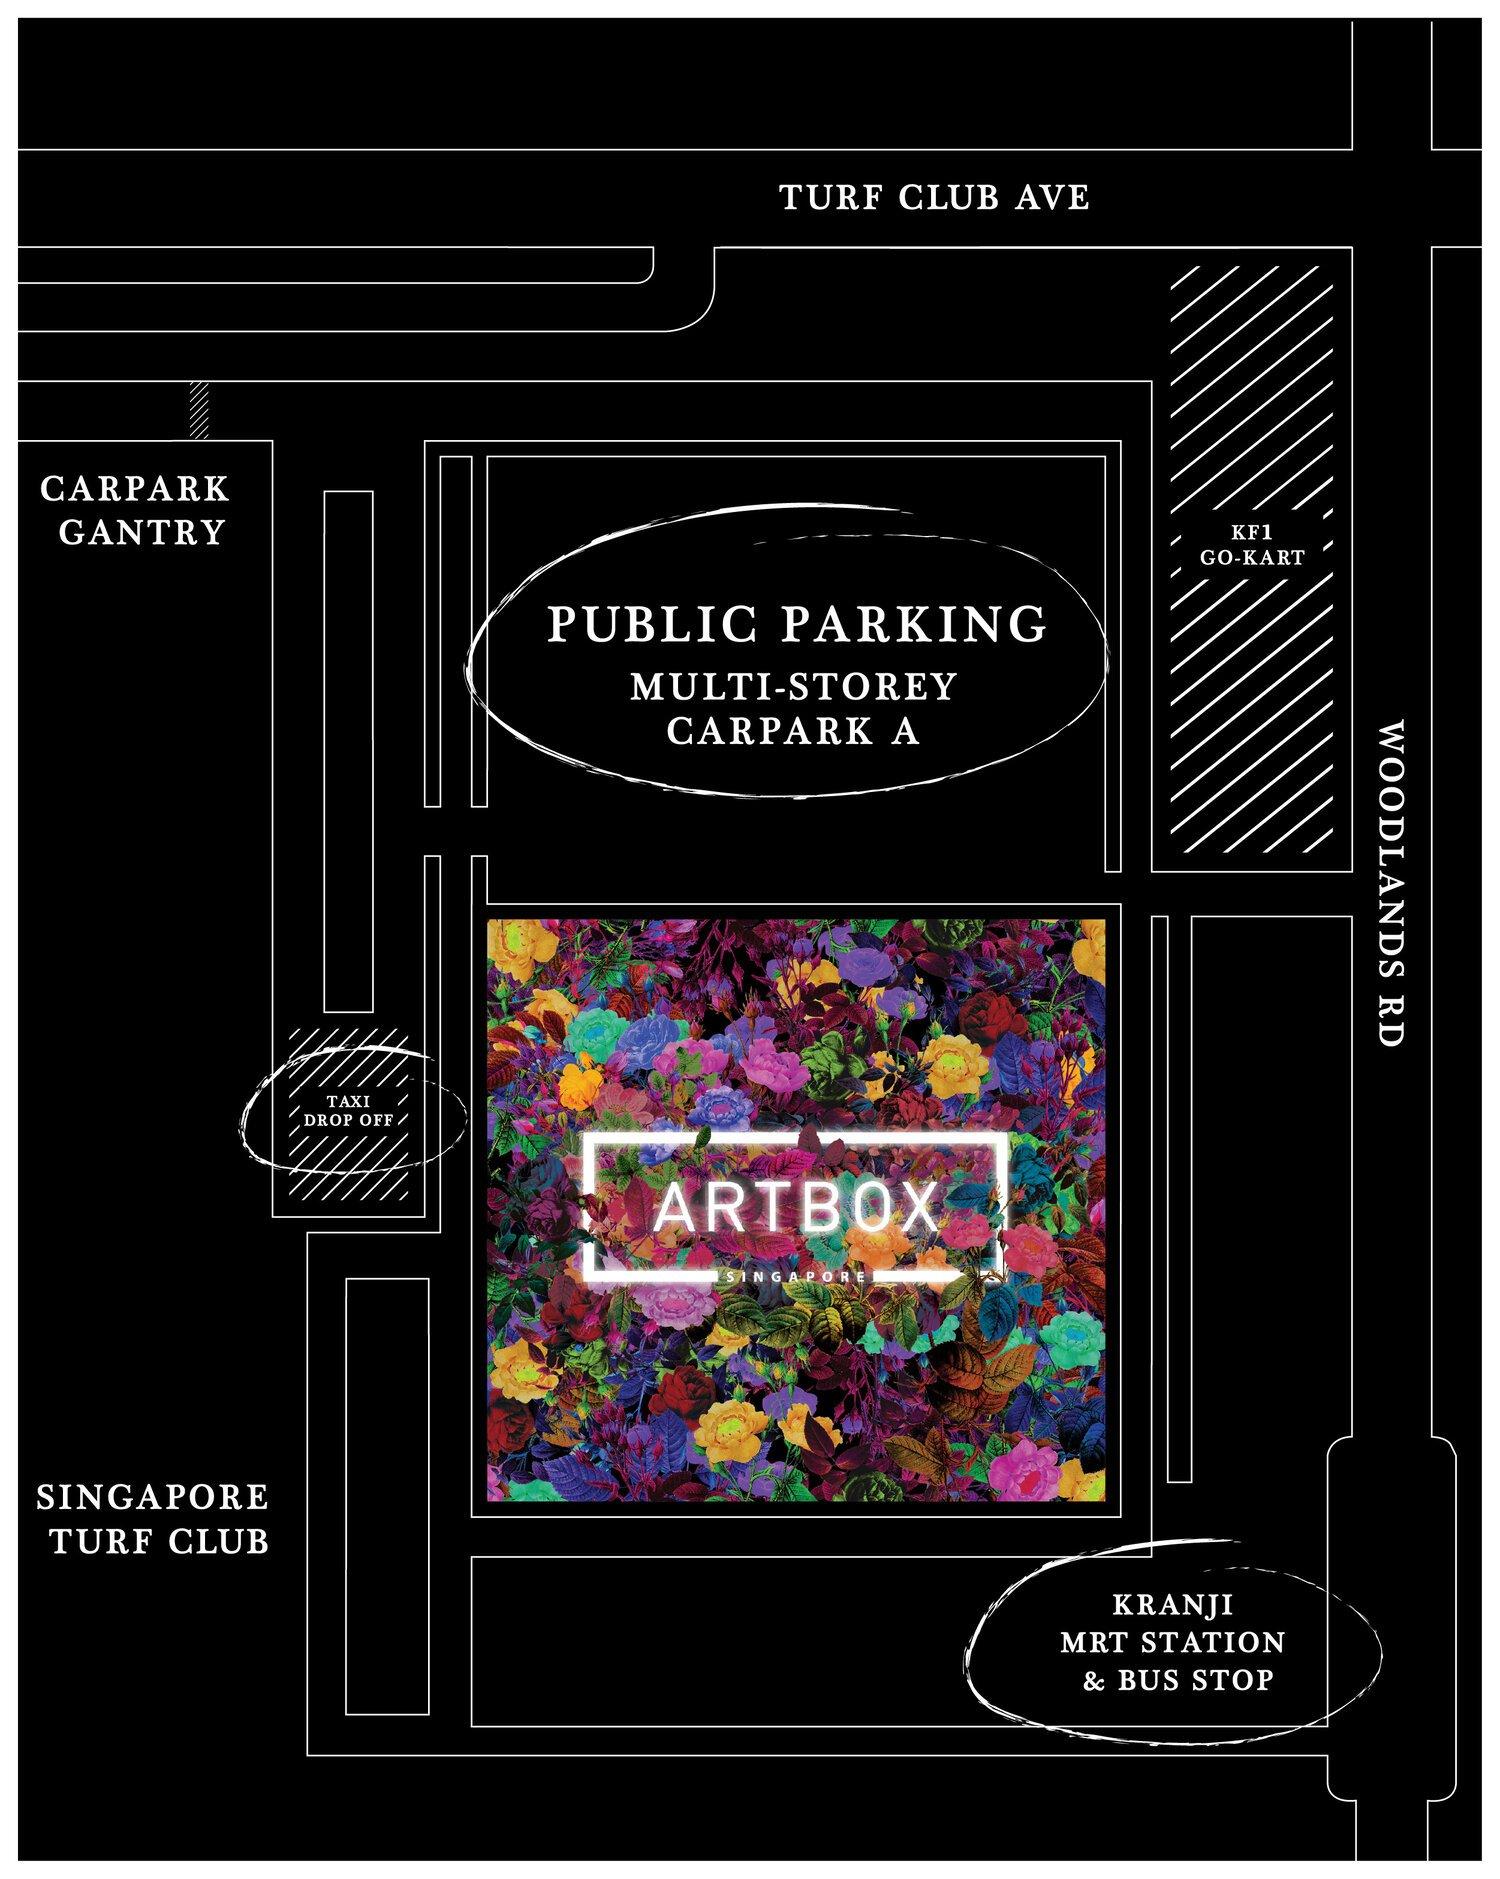 Artbox Singapore - How to get there